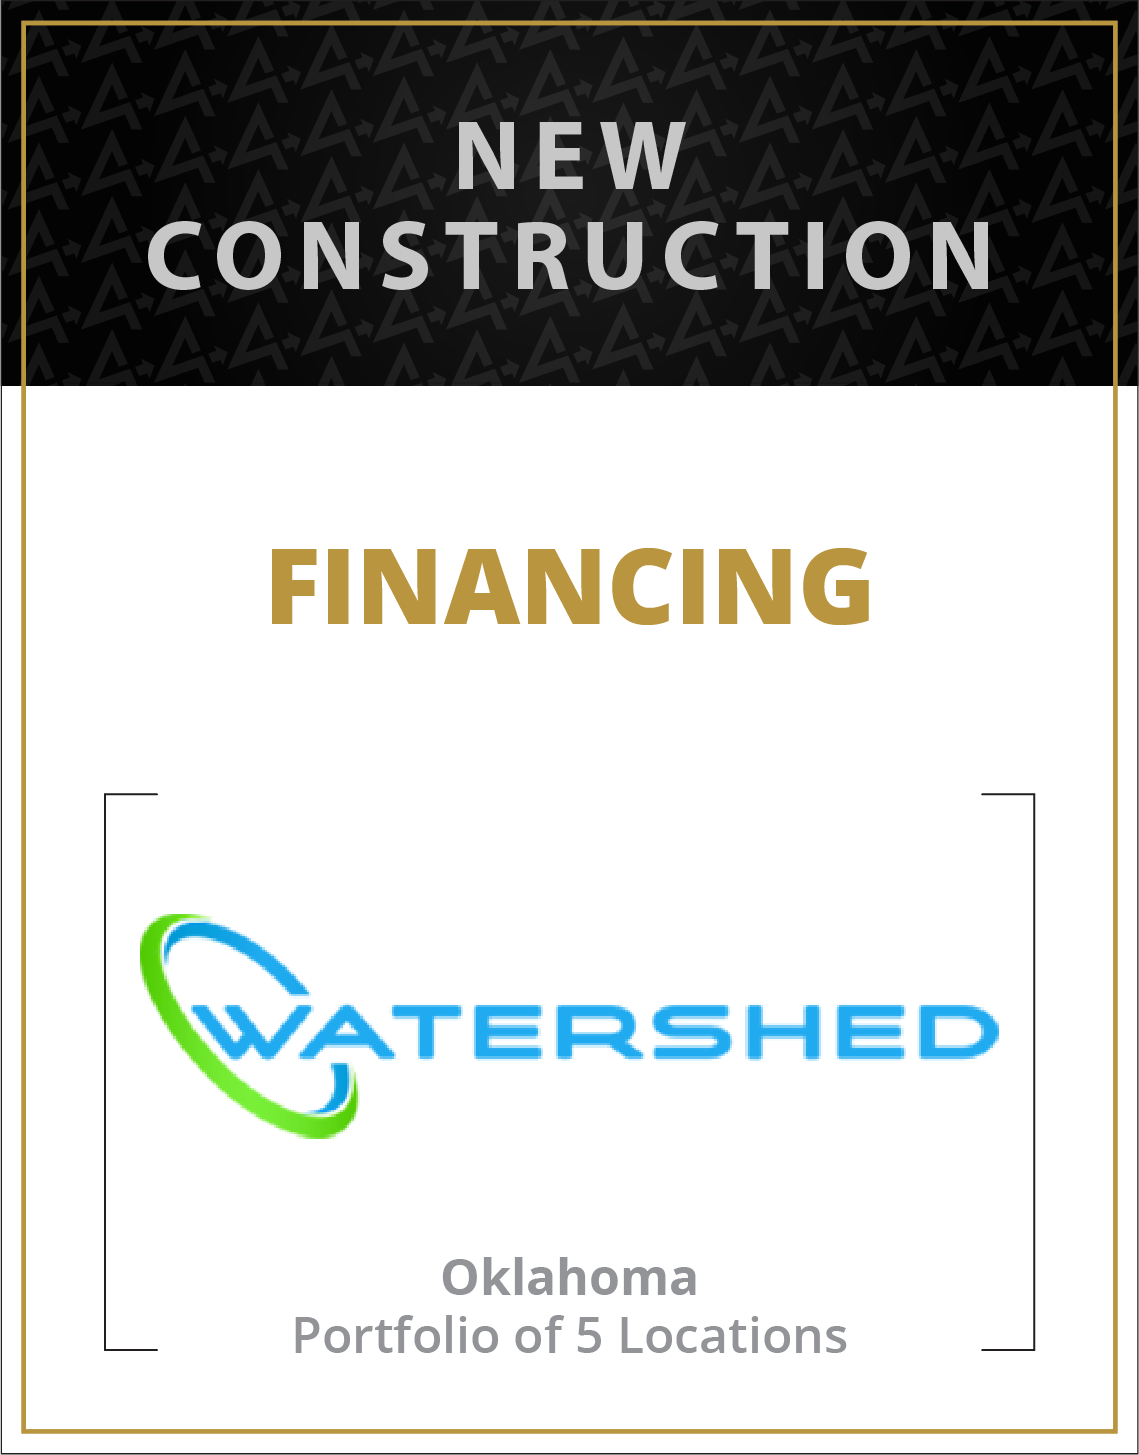 New Construction Financing for Watershed